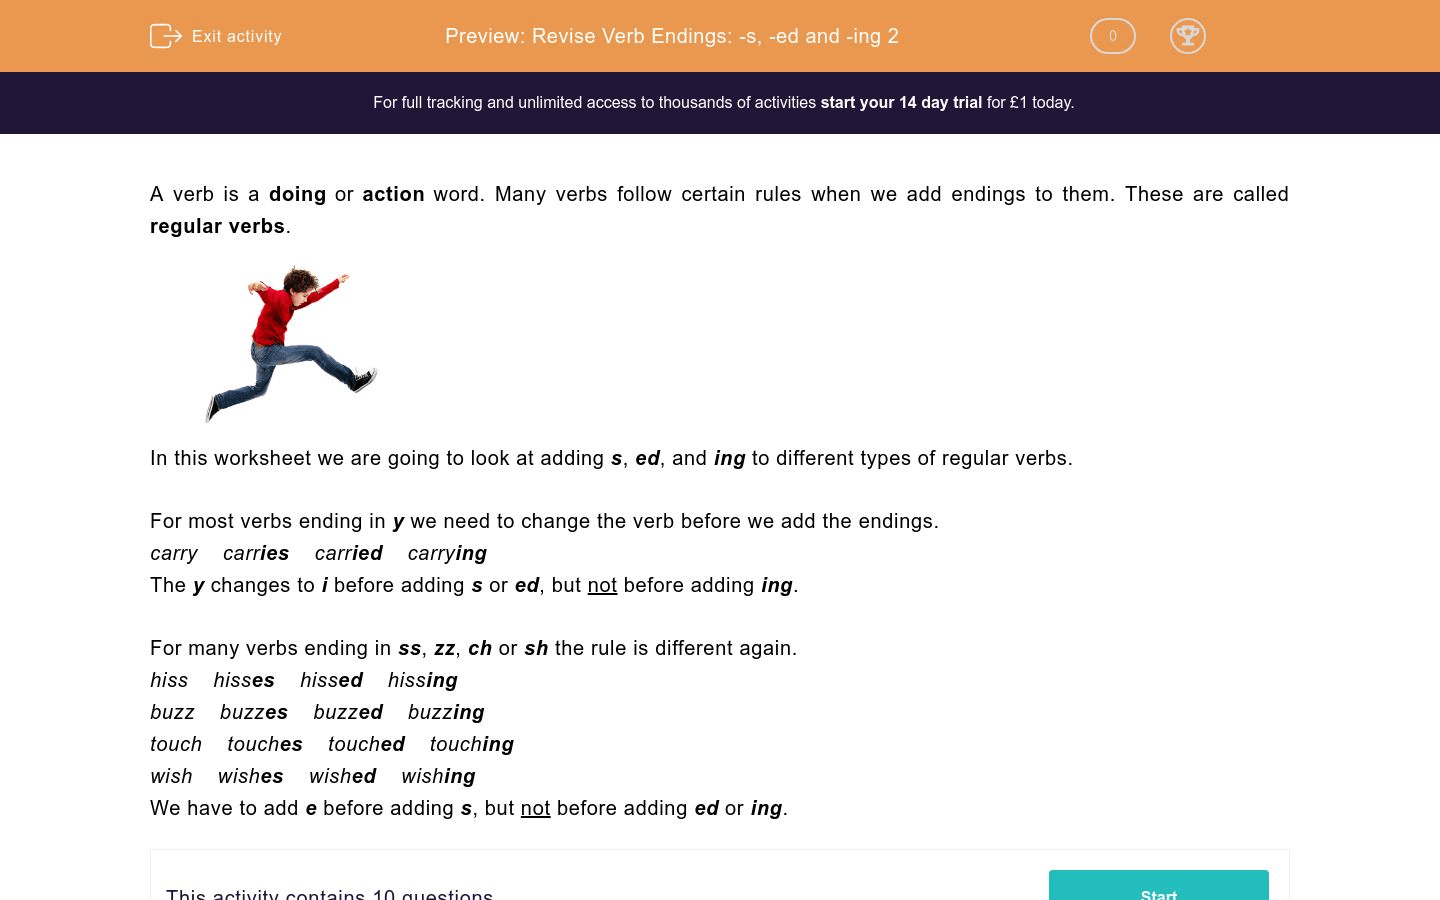 Revise Verb Endings S Ed And Ing 2 Worksheet